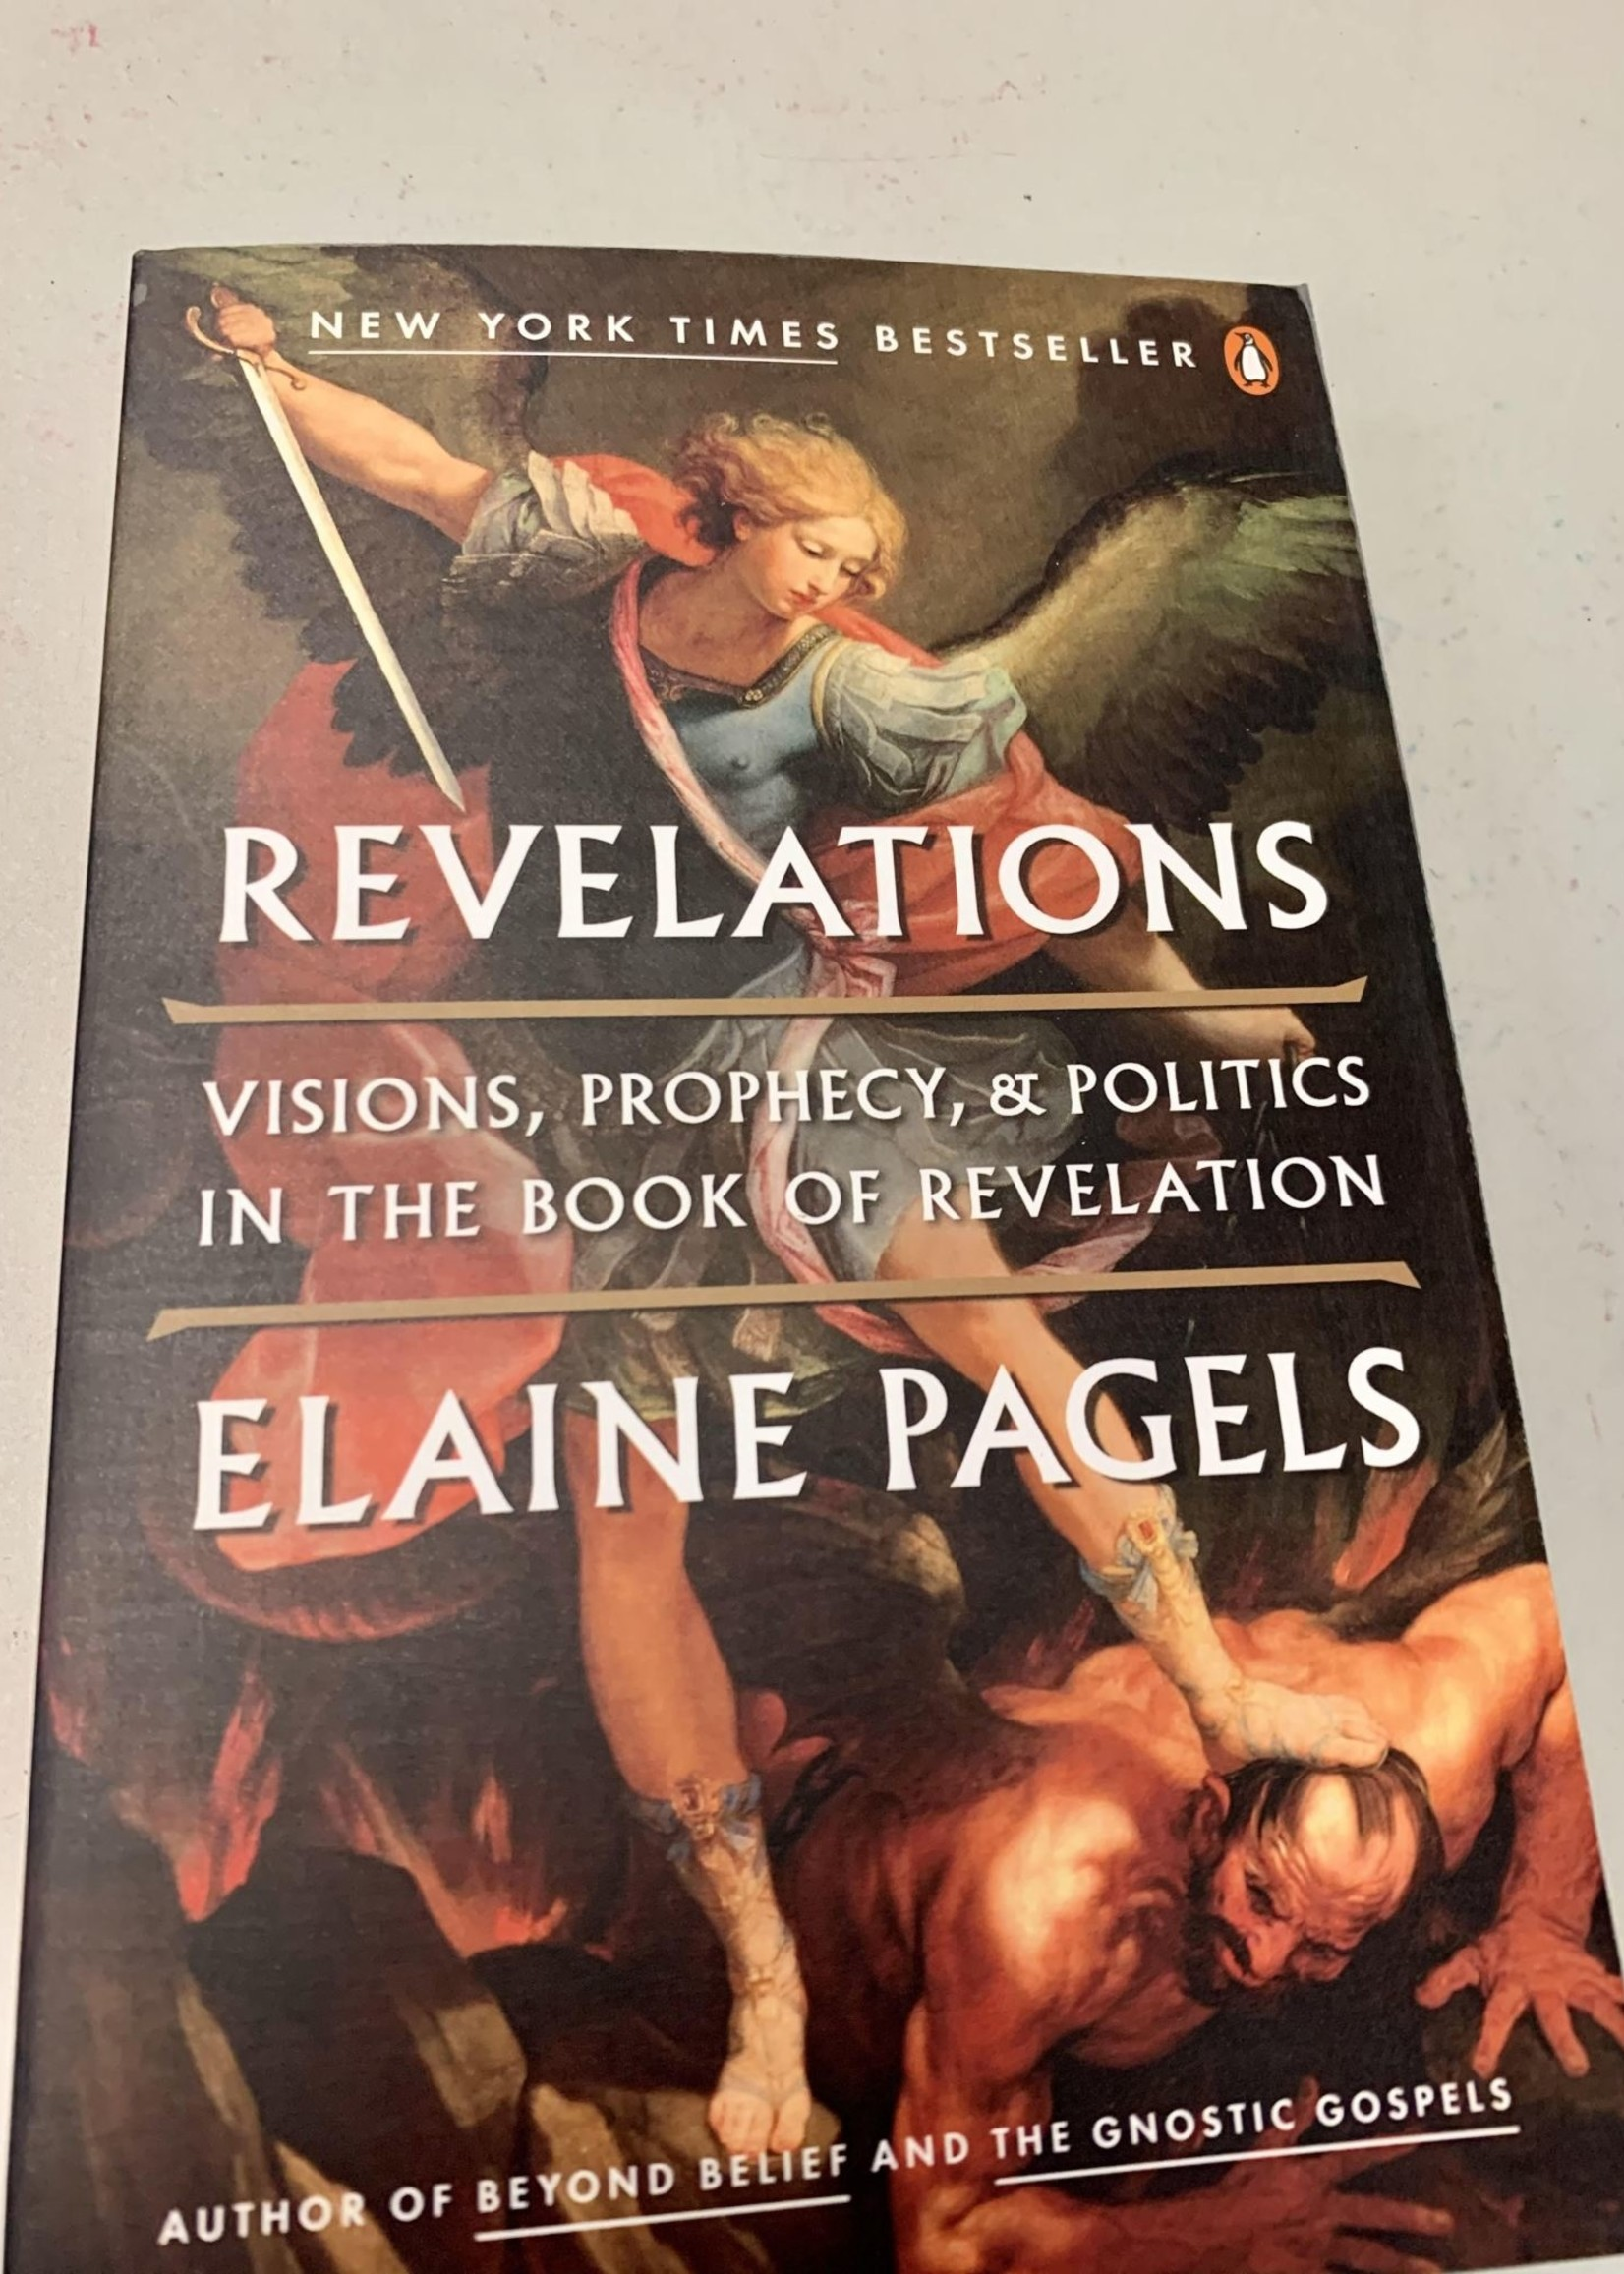 Revelations VISIONS, PROPHECY, AND POLITICS IN THE BOOK OF REVELATION - By ELAINE PAGELS